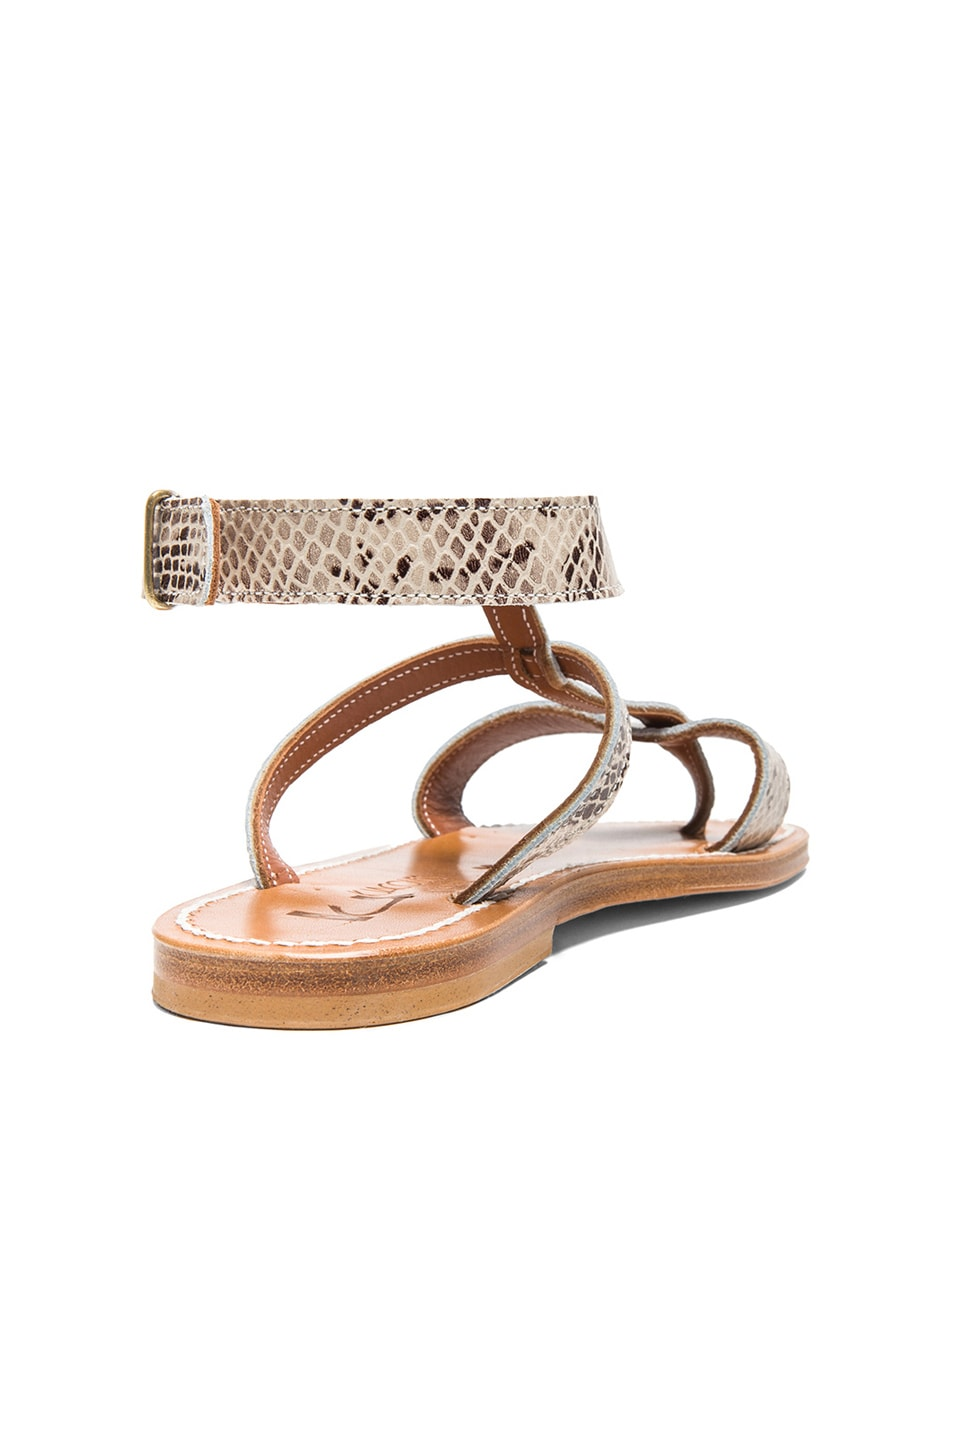 Image 3 of K Jacques Corvette Snakeskin Embossed Leather Sandals in Duna